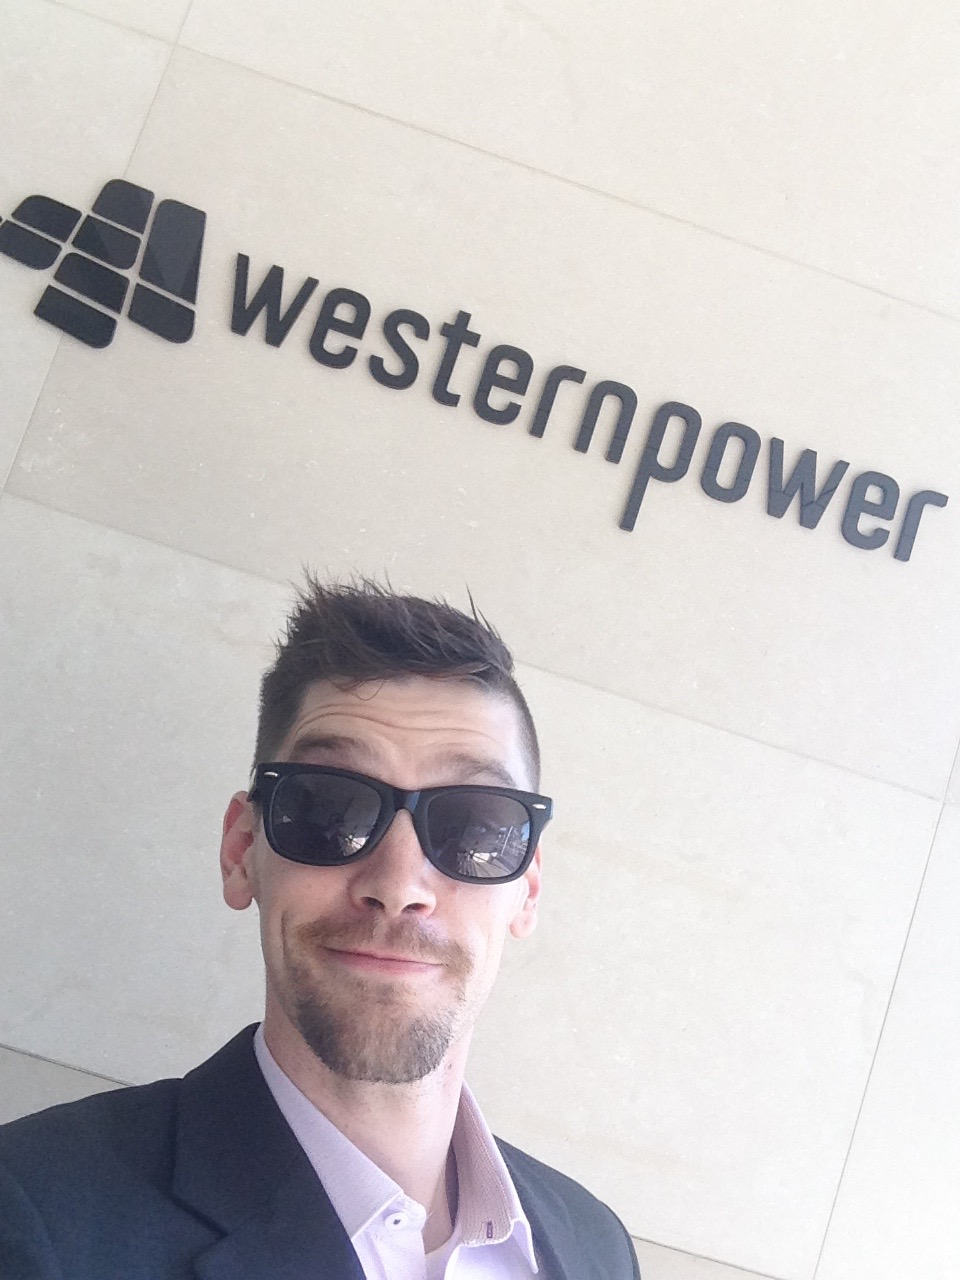 A selfie from my April 2016 visit with Western Power